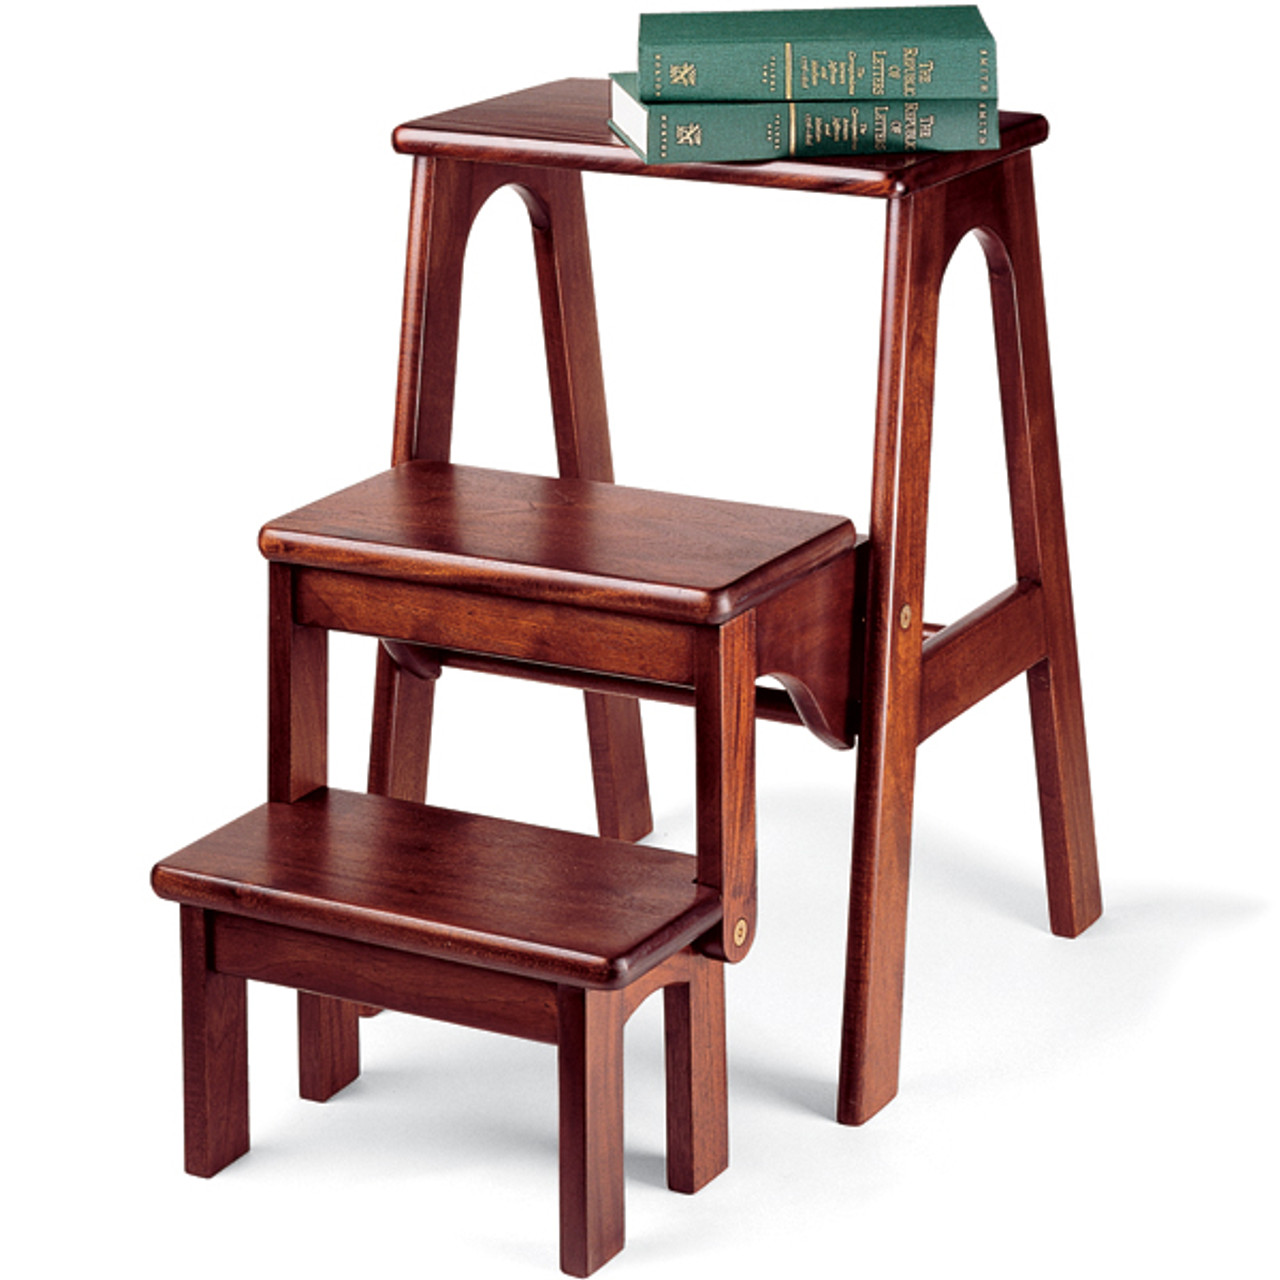 Magnificent Folding Library Steps Beatyapartments Chair Design Images Beatyapartmentscom